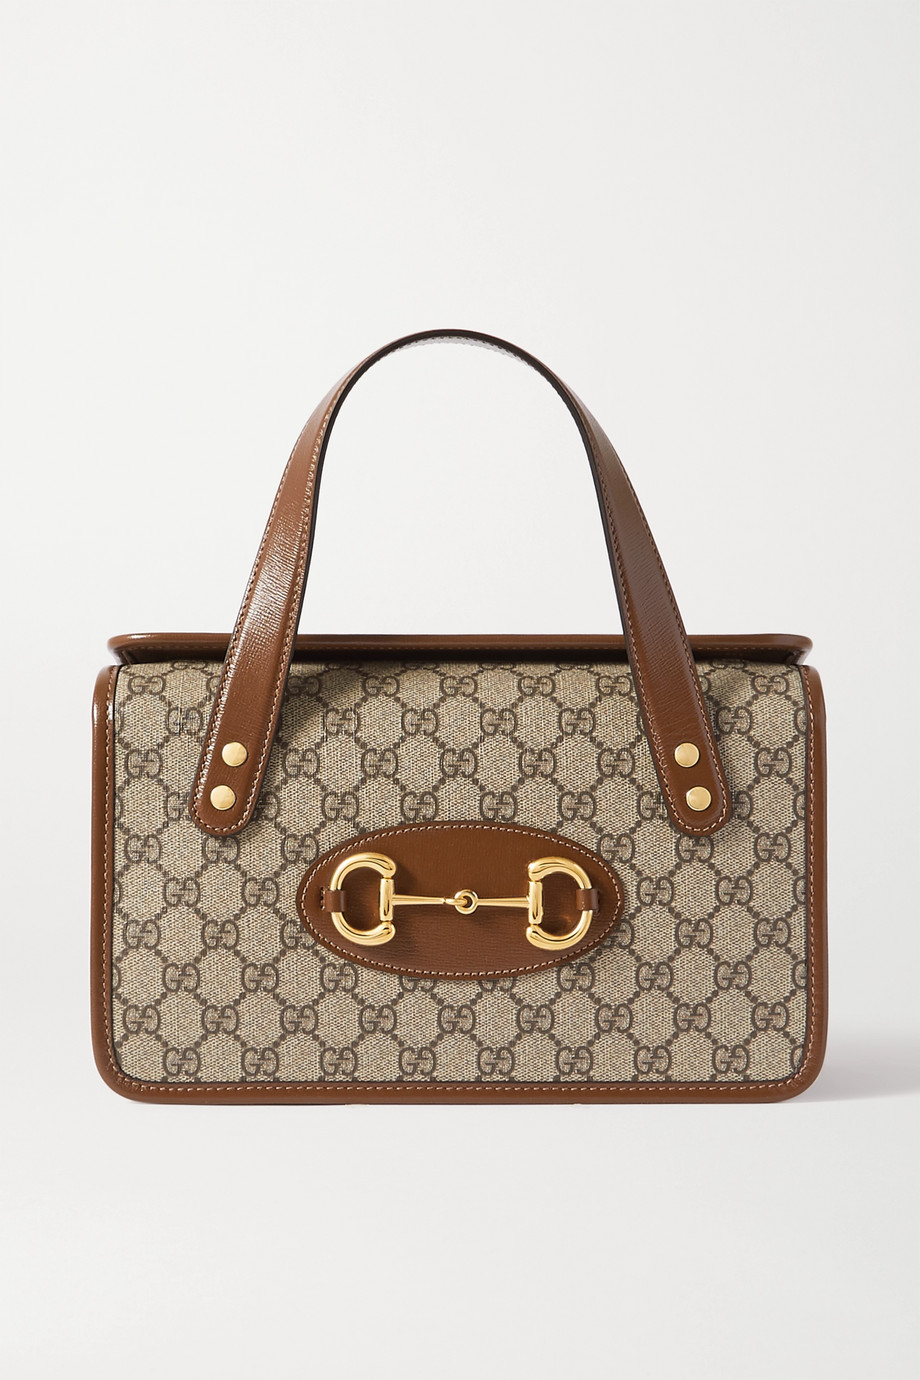 GUCCI 1955 Horsebit leather-trimmed printed coated-canvas shoulder bag